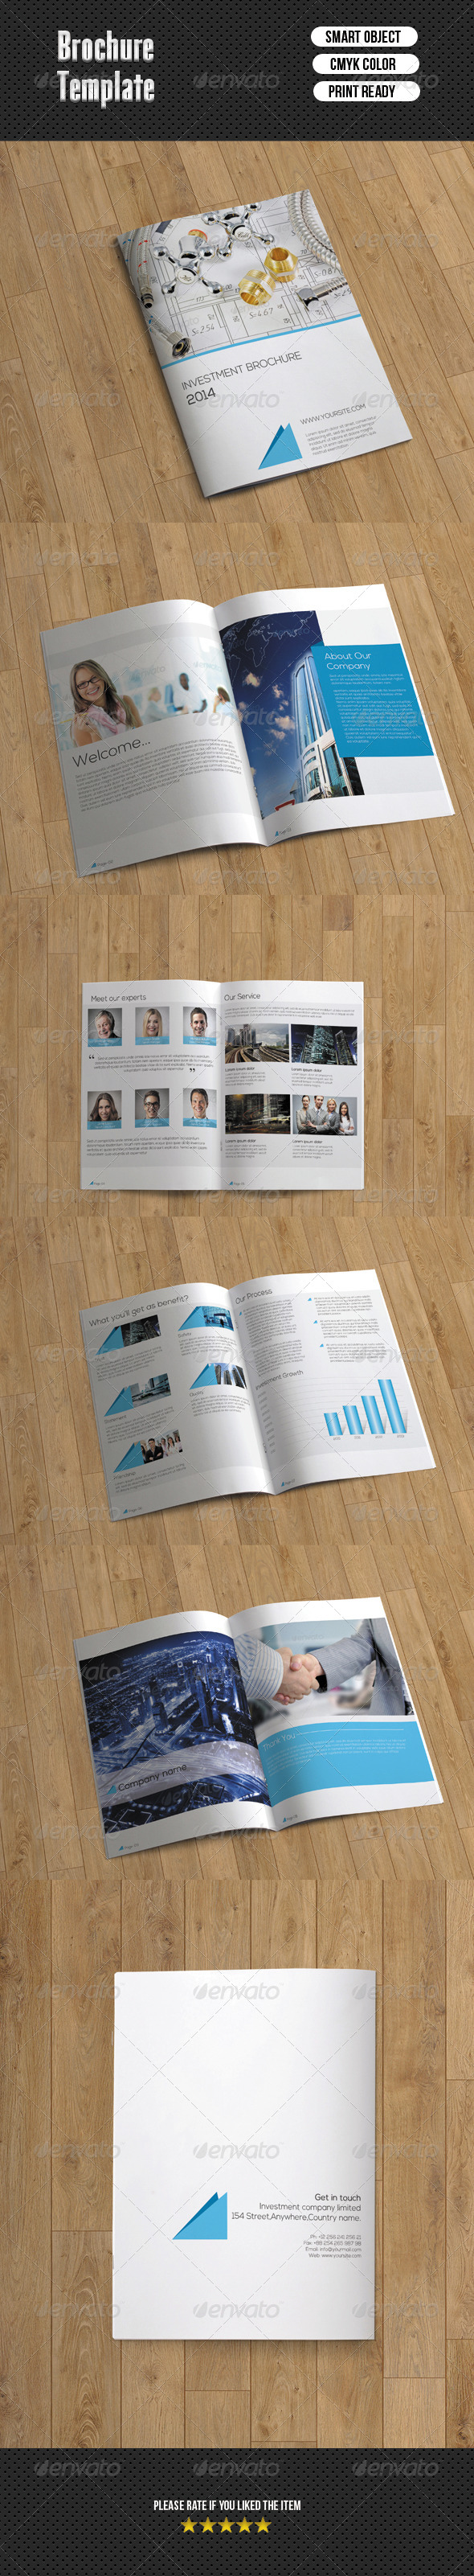 Bifold Brochure-Business 10 Pages